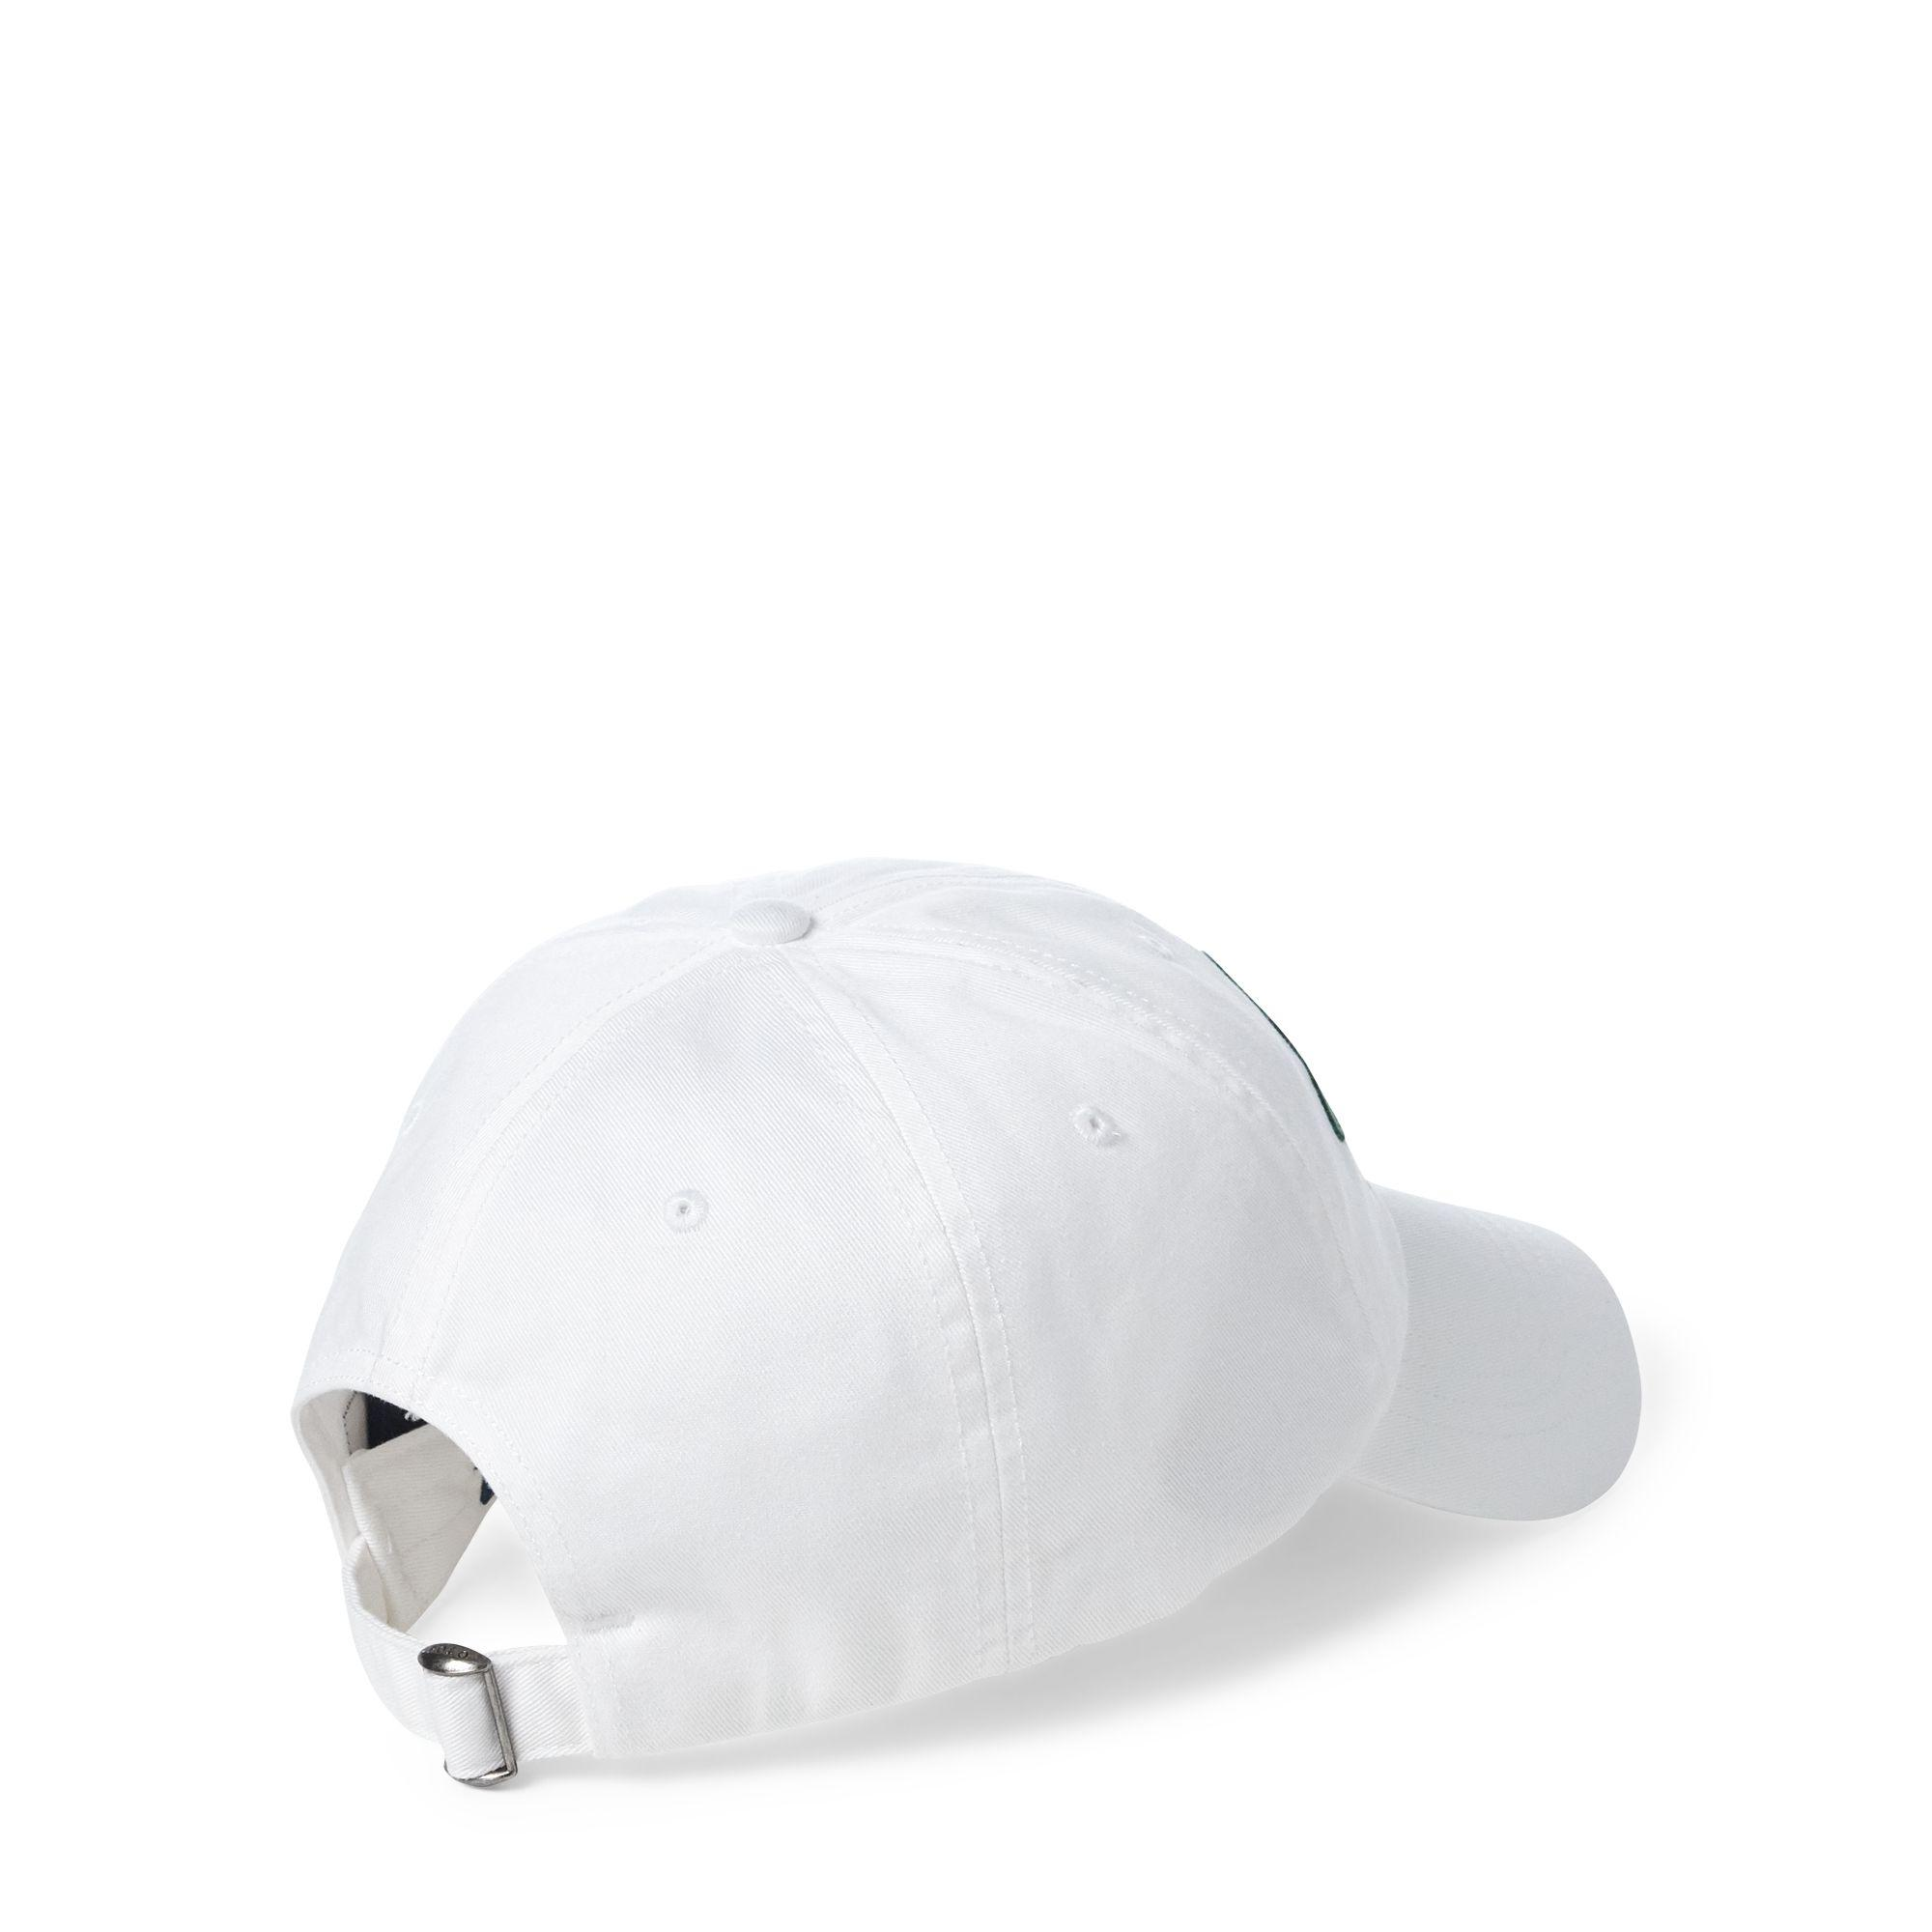 47df76c516a95 Polo Ralph Lauren Ralph s Coffee Hat in White for Men - Lyst